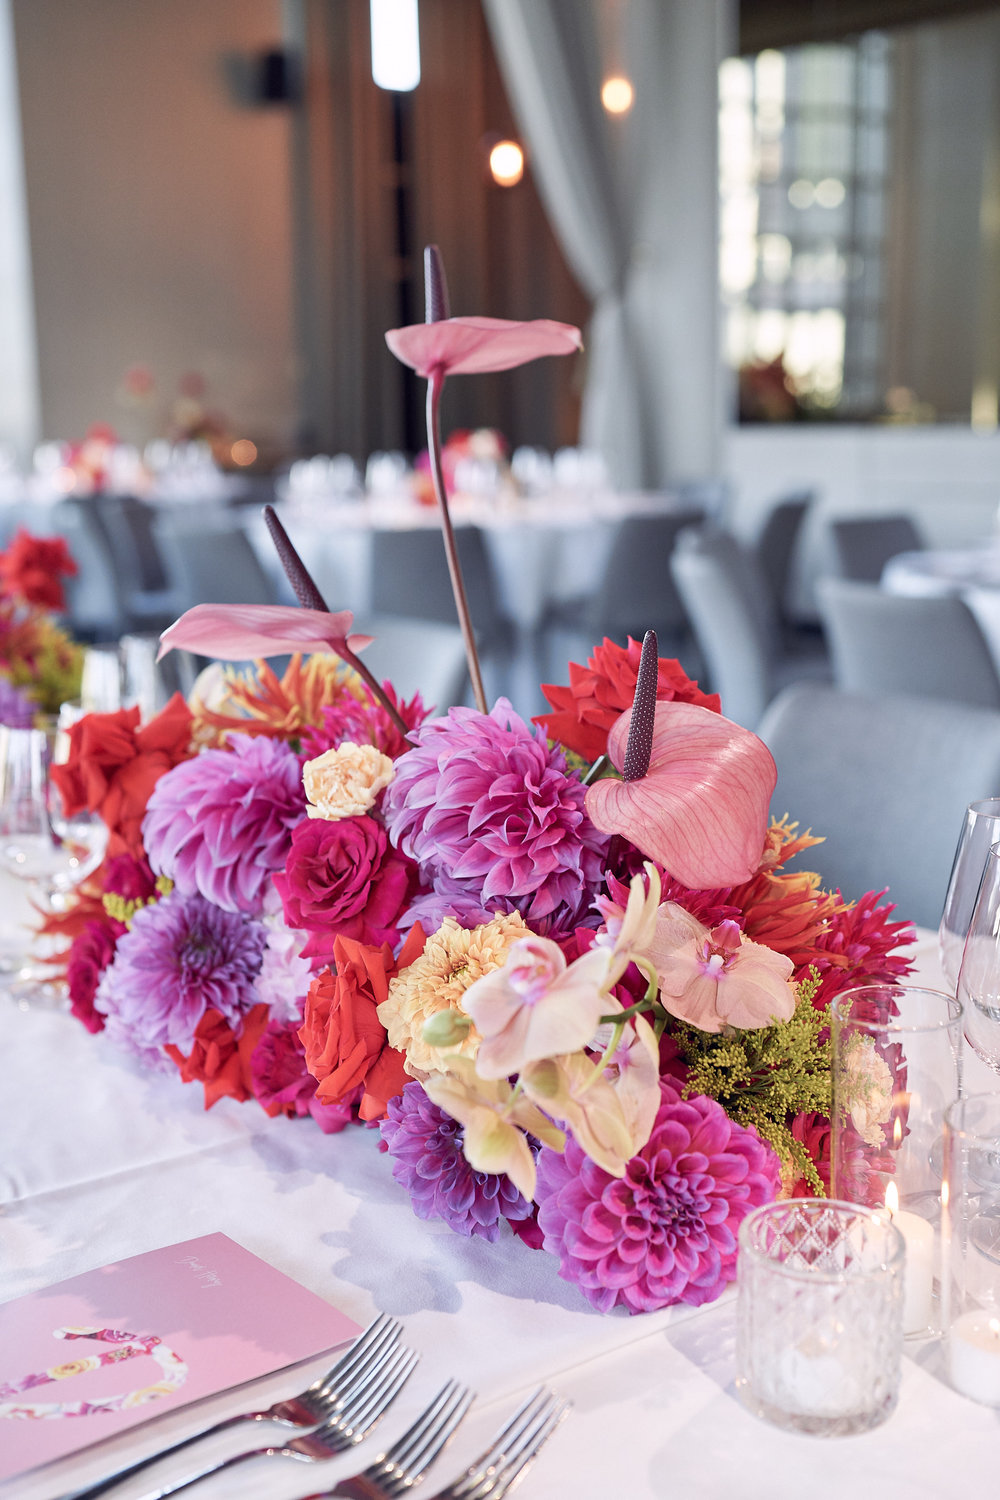 Melbourne Metropolis wedding reception styling photo by lost in love photography